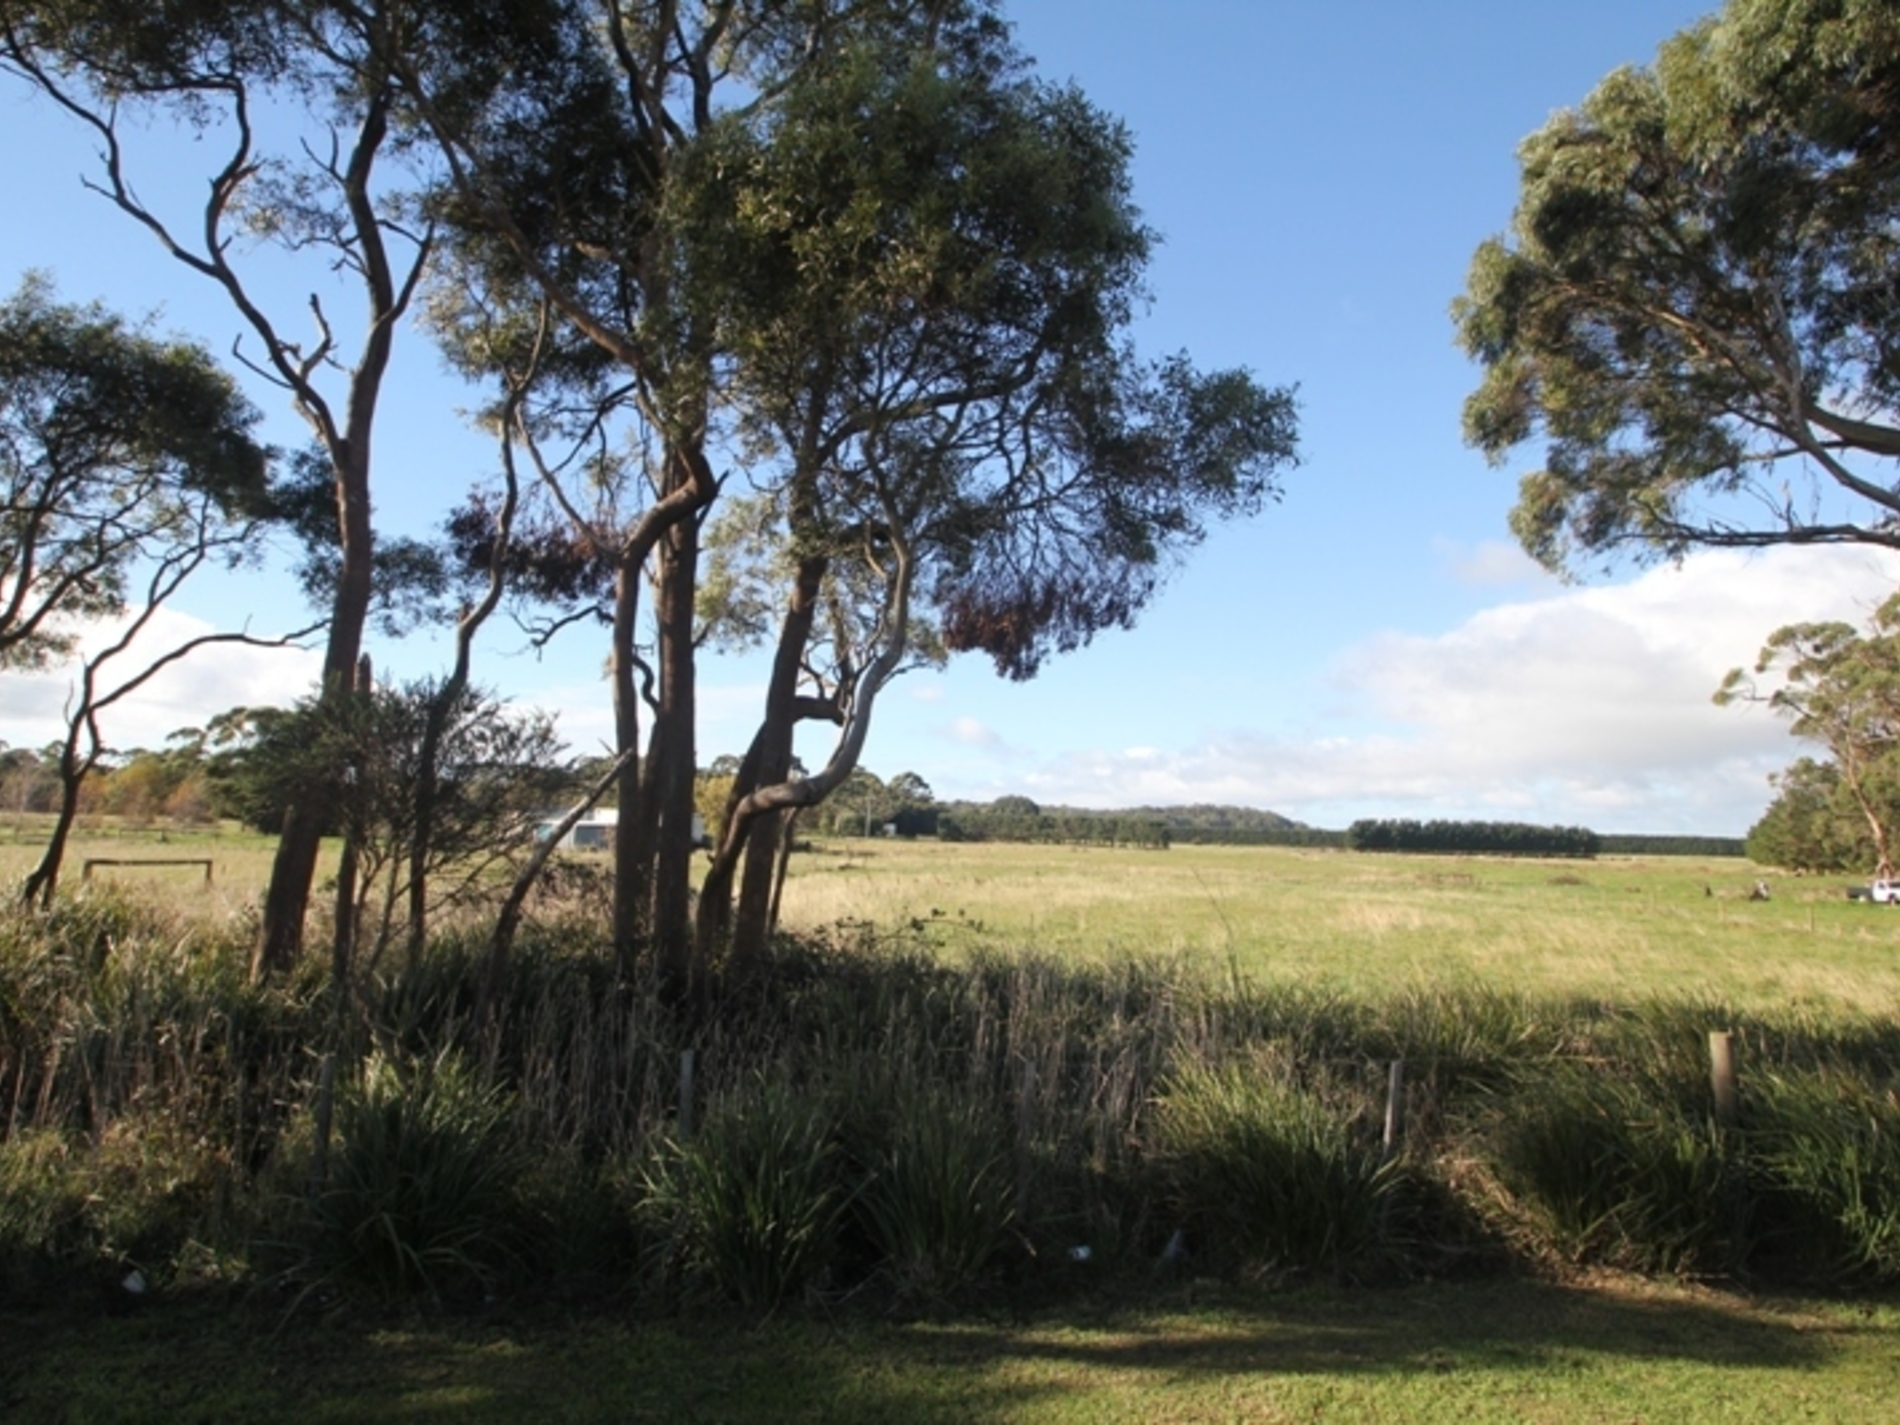 - Rifle Range Road, Smithton